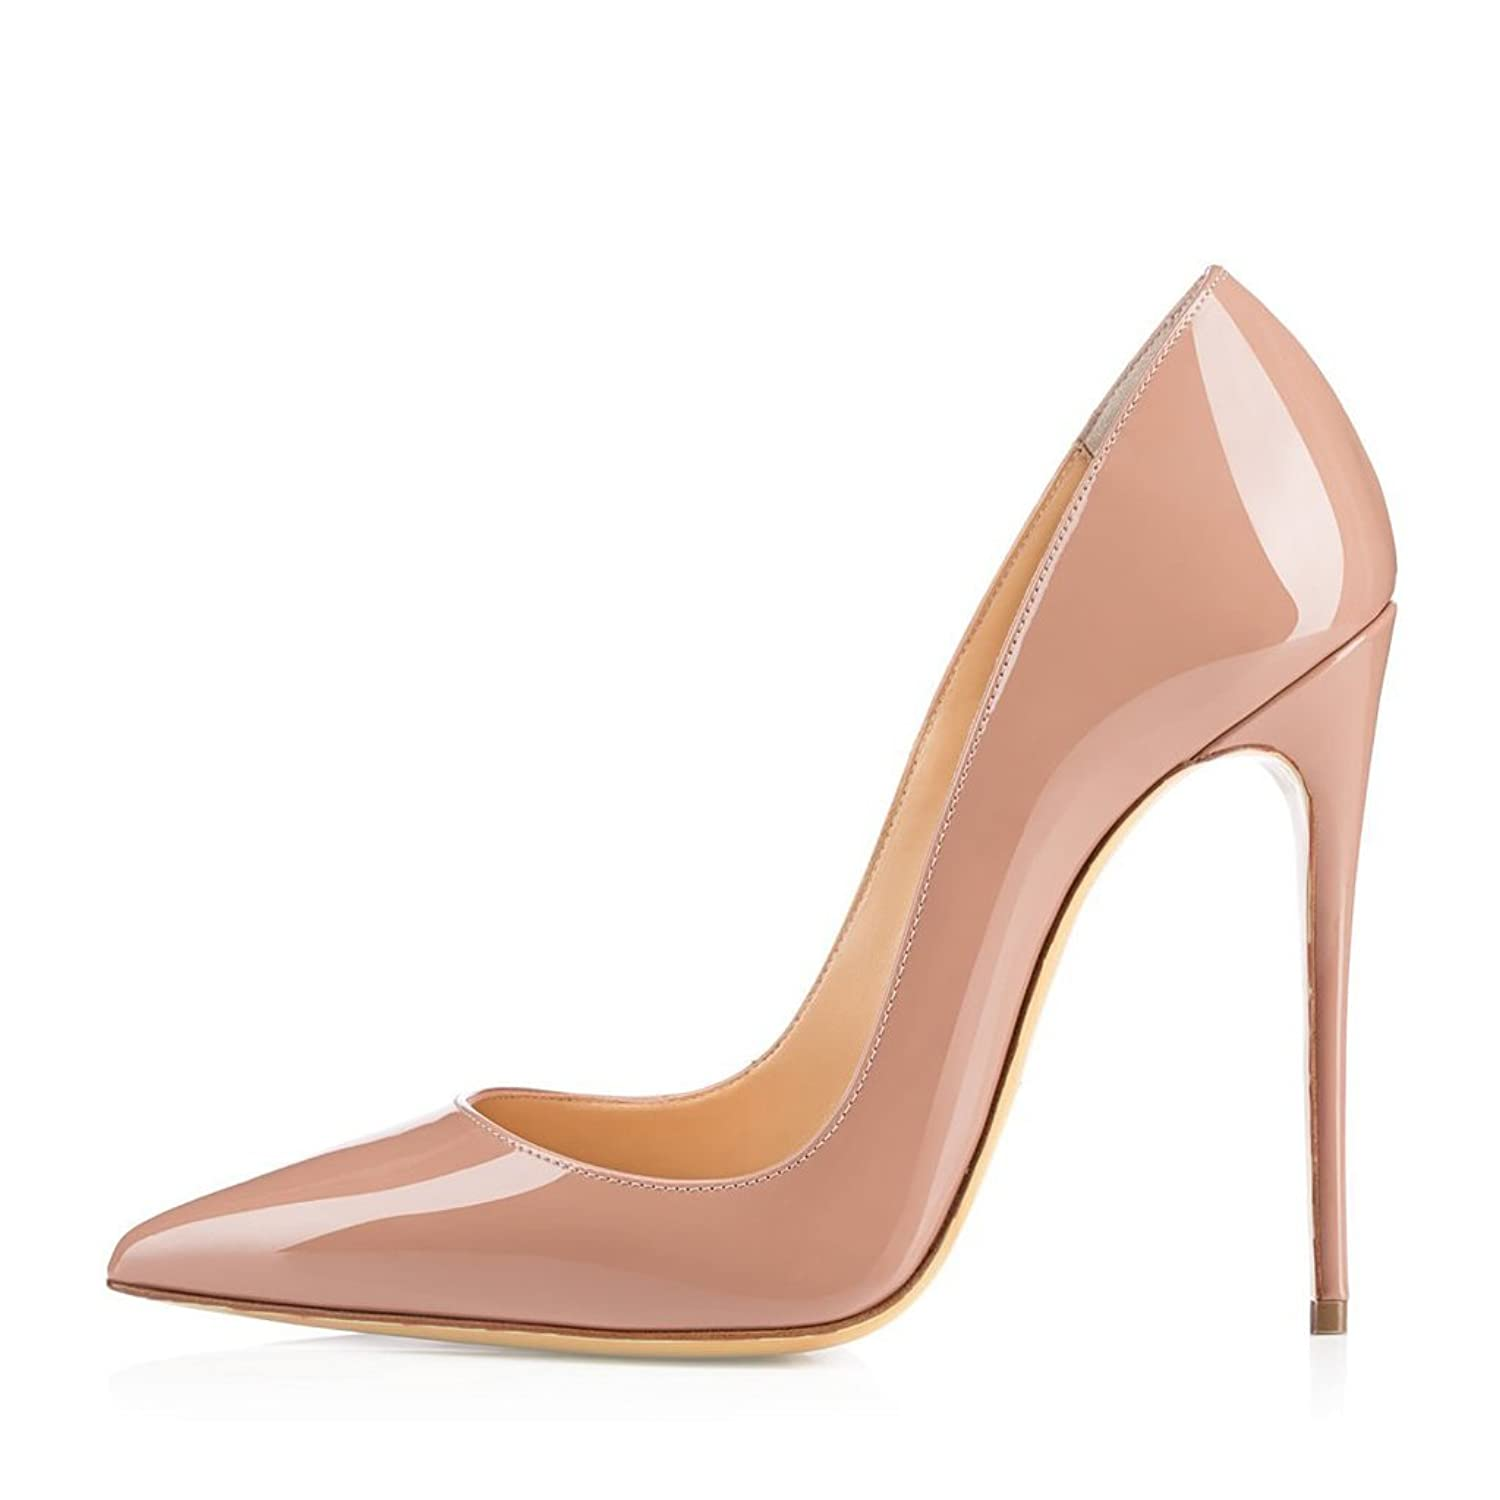 dreamt classy nudes stilettos ever comforter pin especially comfortable ones fashionable the plus s it about all of you shoes